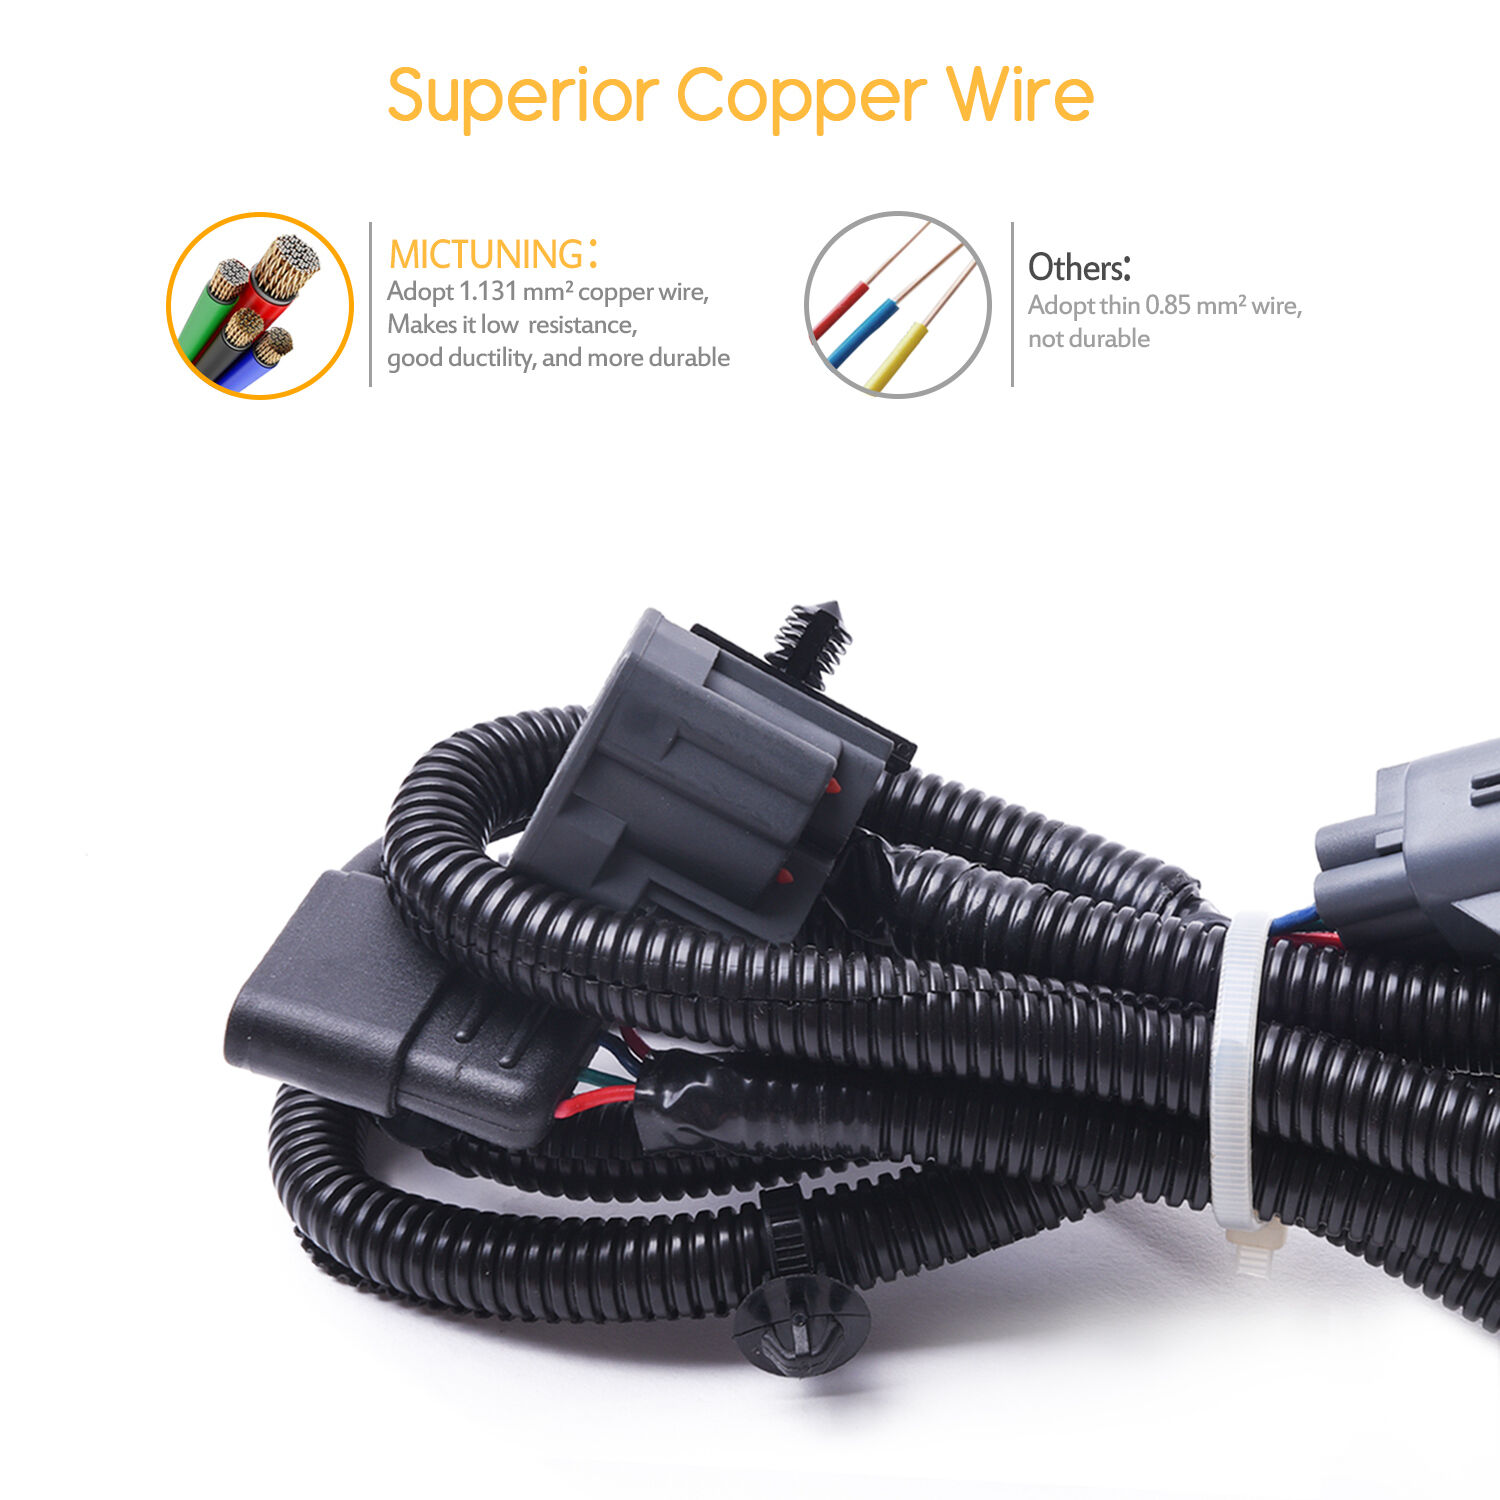 Trailer Wiring Harness Clips - All Wiring Diagram on plastic clip hardware, plastic clip nut, plastic clip connector, plastic clip cover,